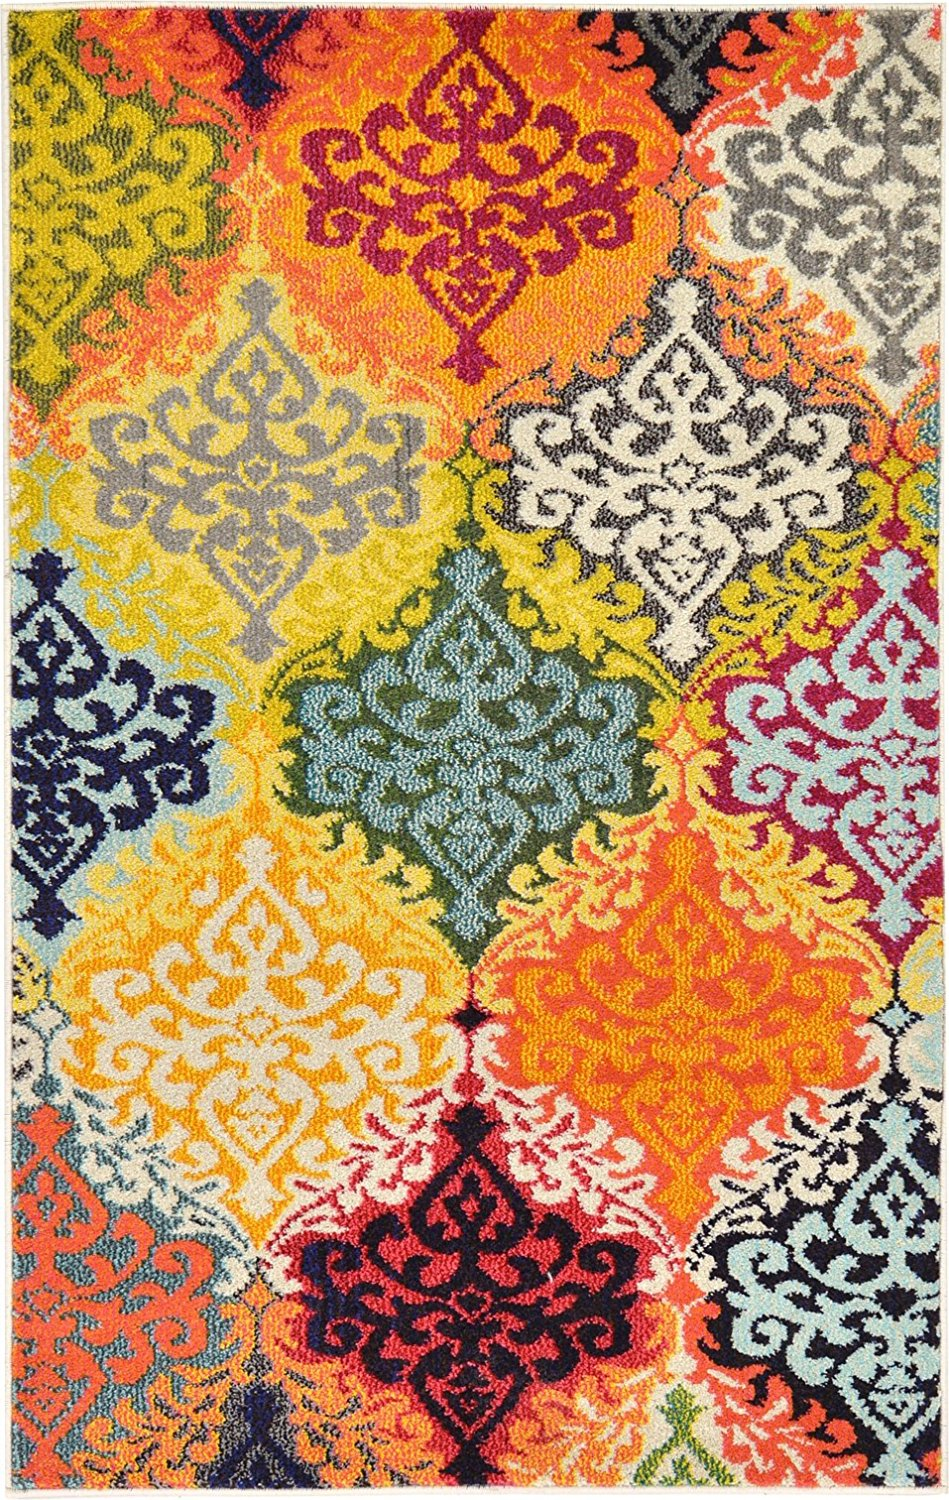 A2Z Rug Modern Mayfair Collection, Multi 3.2-Feed-by-5.2-Feed Area Rugs - Contemporary Living & Dinning & Bedroom Carpet